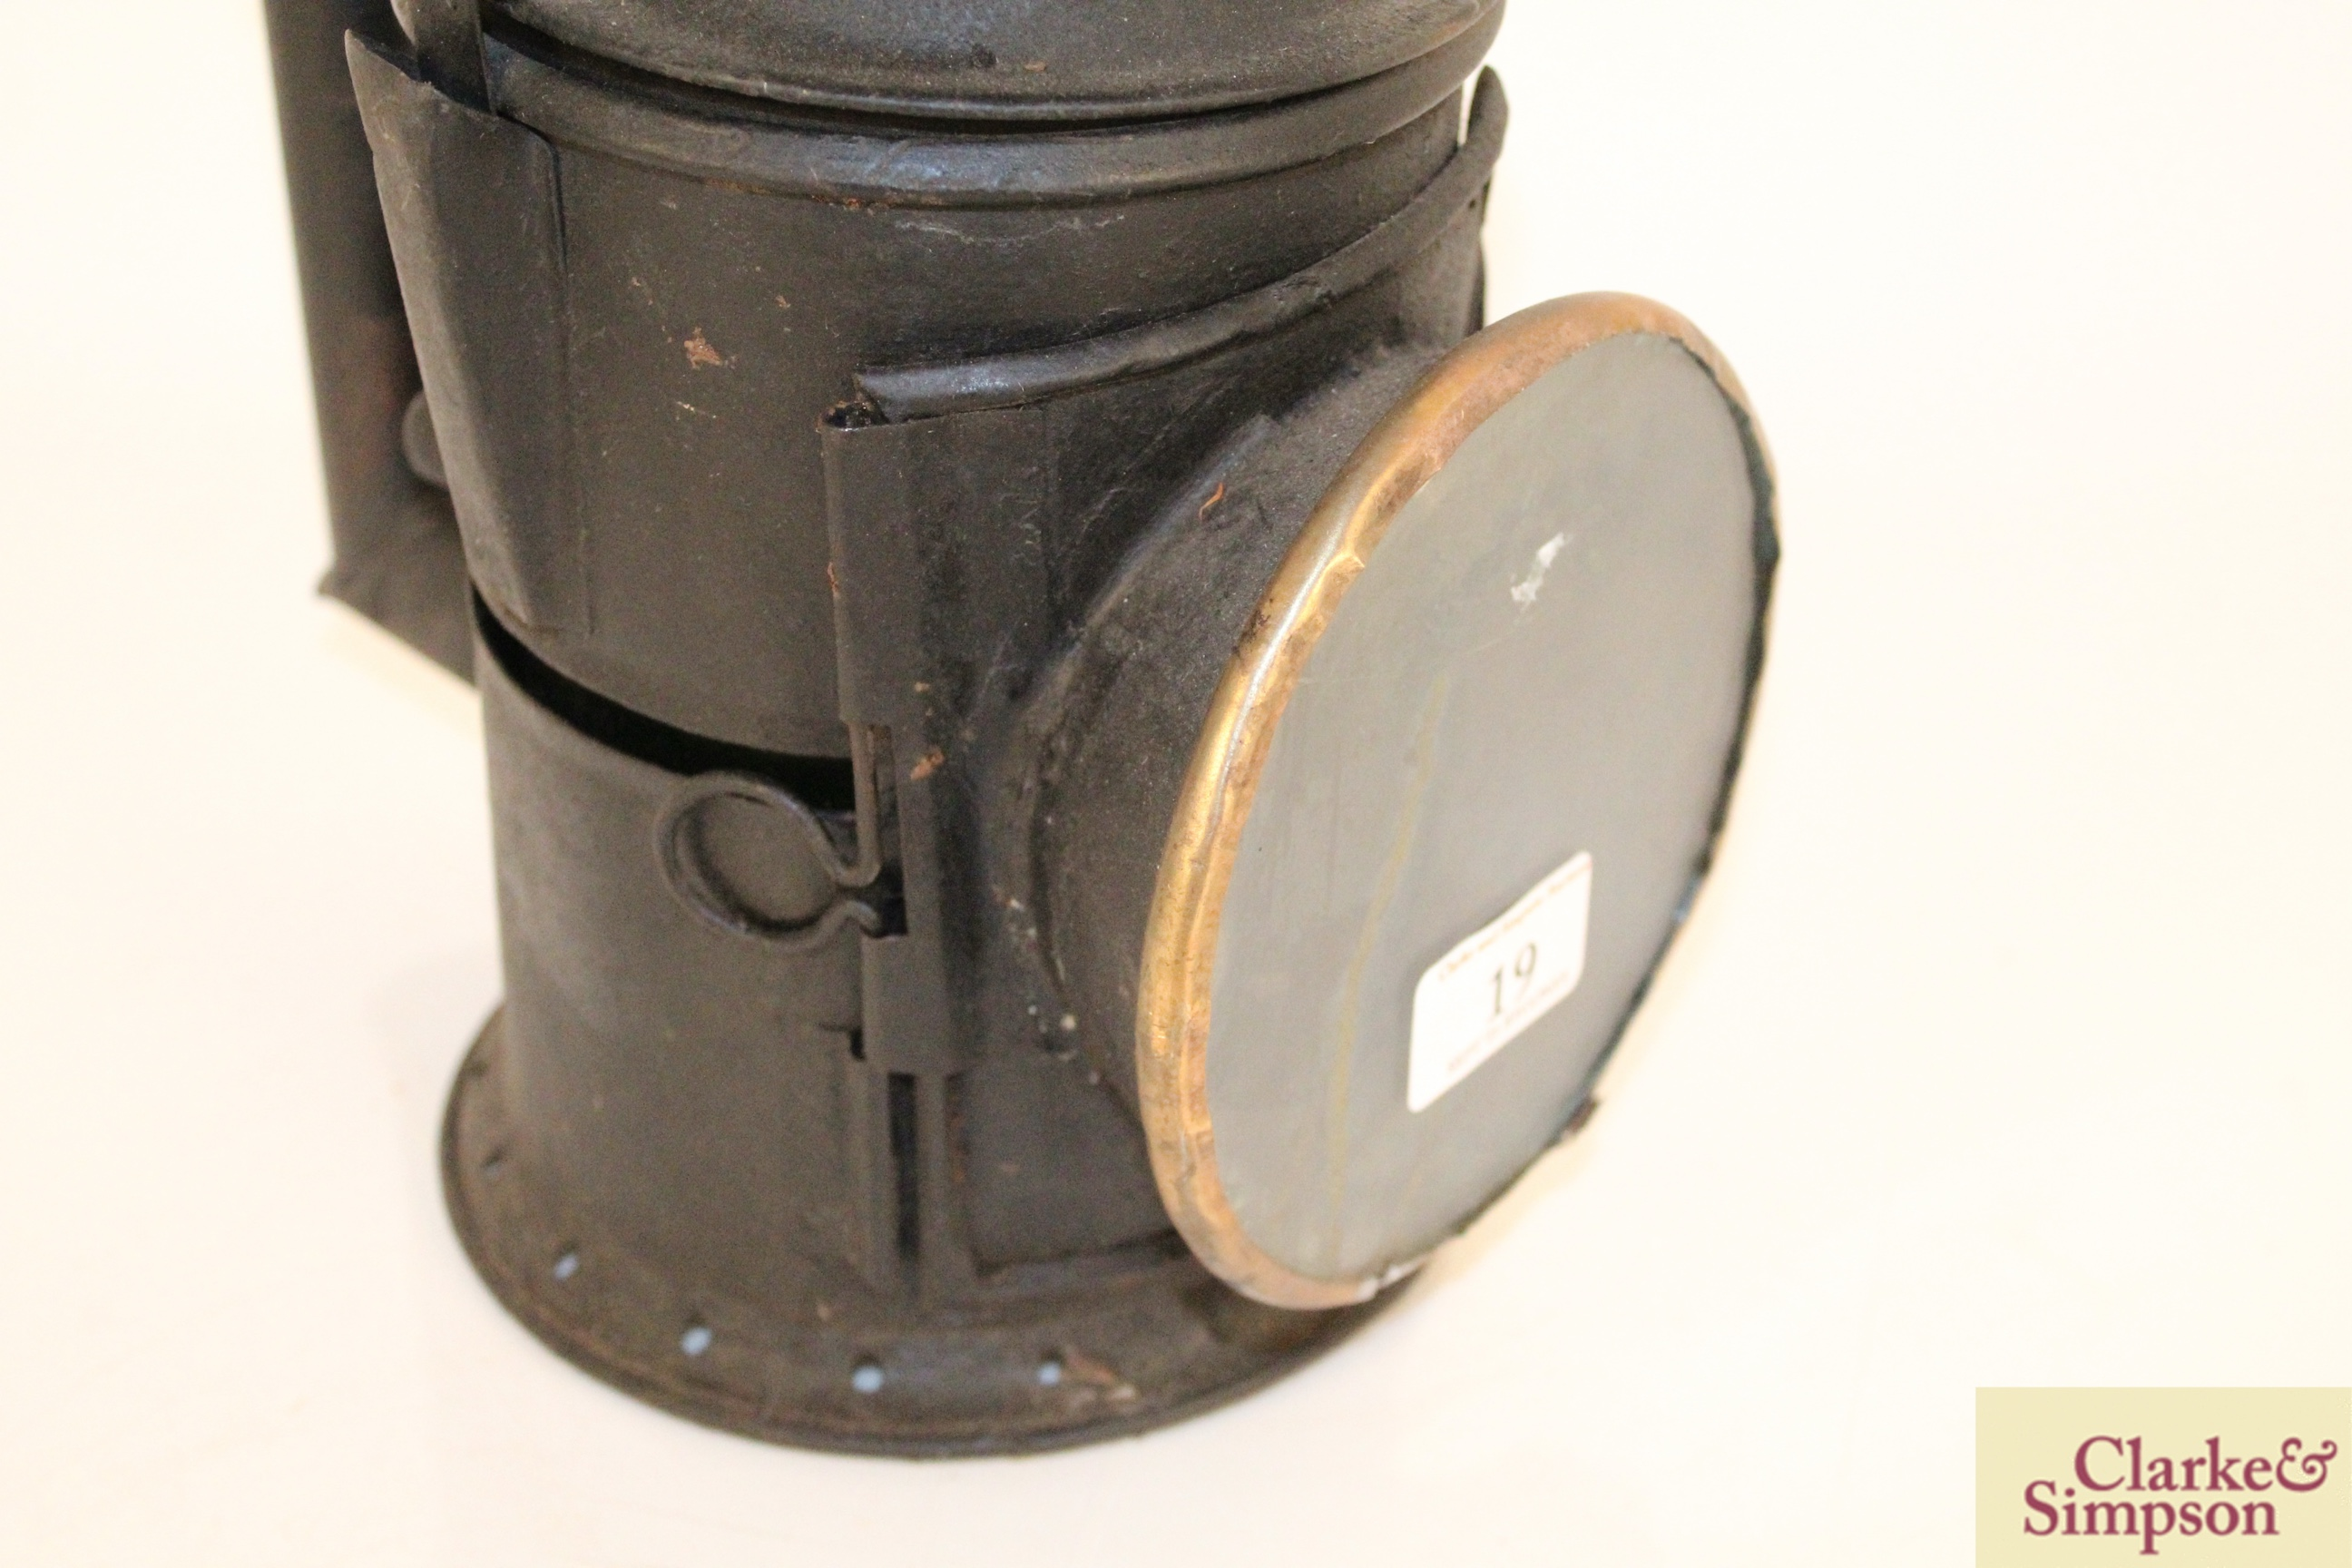 A vintage railway signal lamp - Image 5 of 5